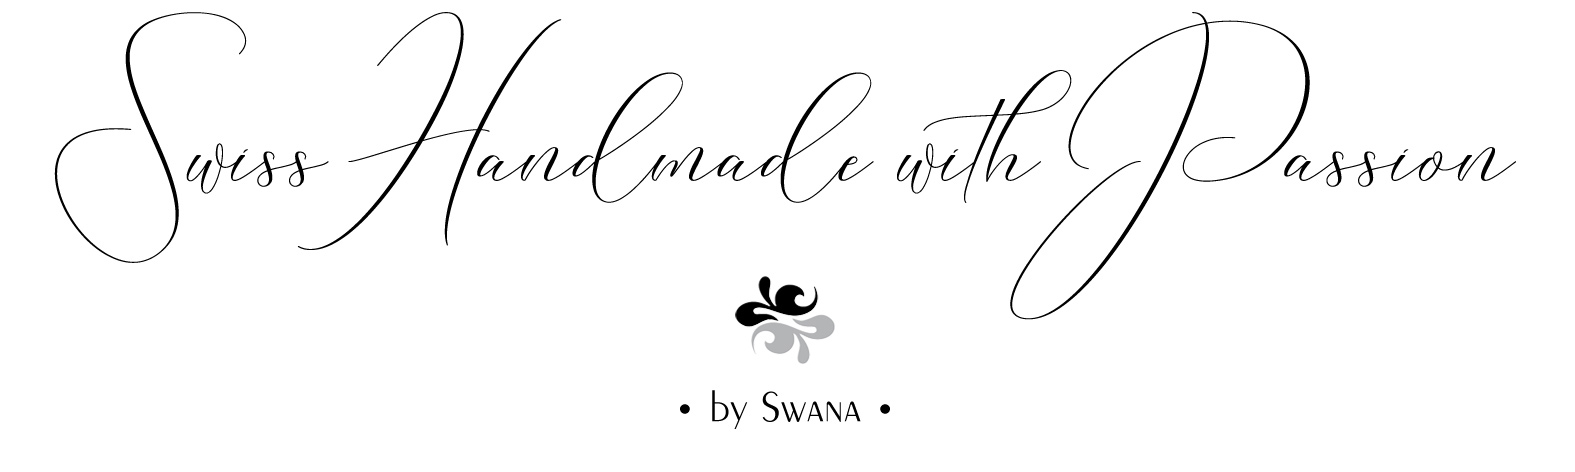 Swiss Handmade with Passion by Swana